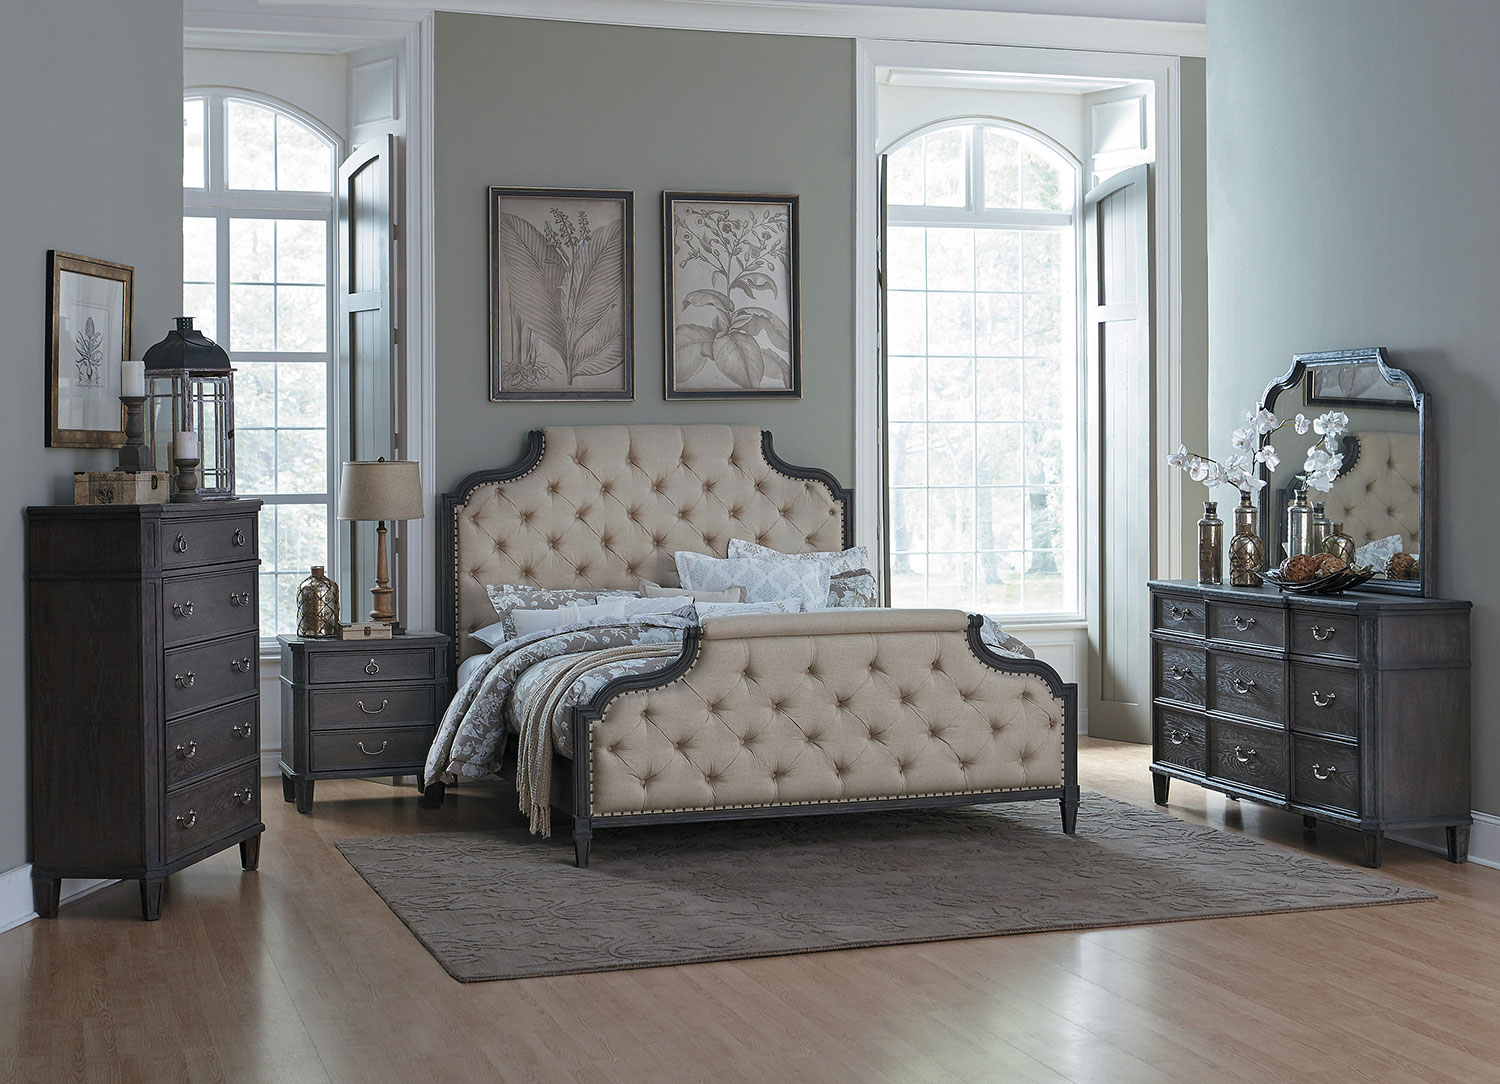 Homelegance Lindley Button Tufted Upholstered Bedroom Set - Dusty Gray